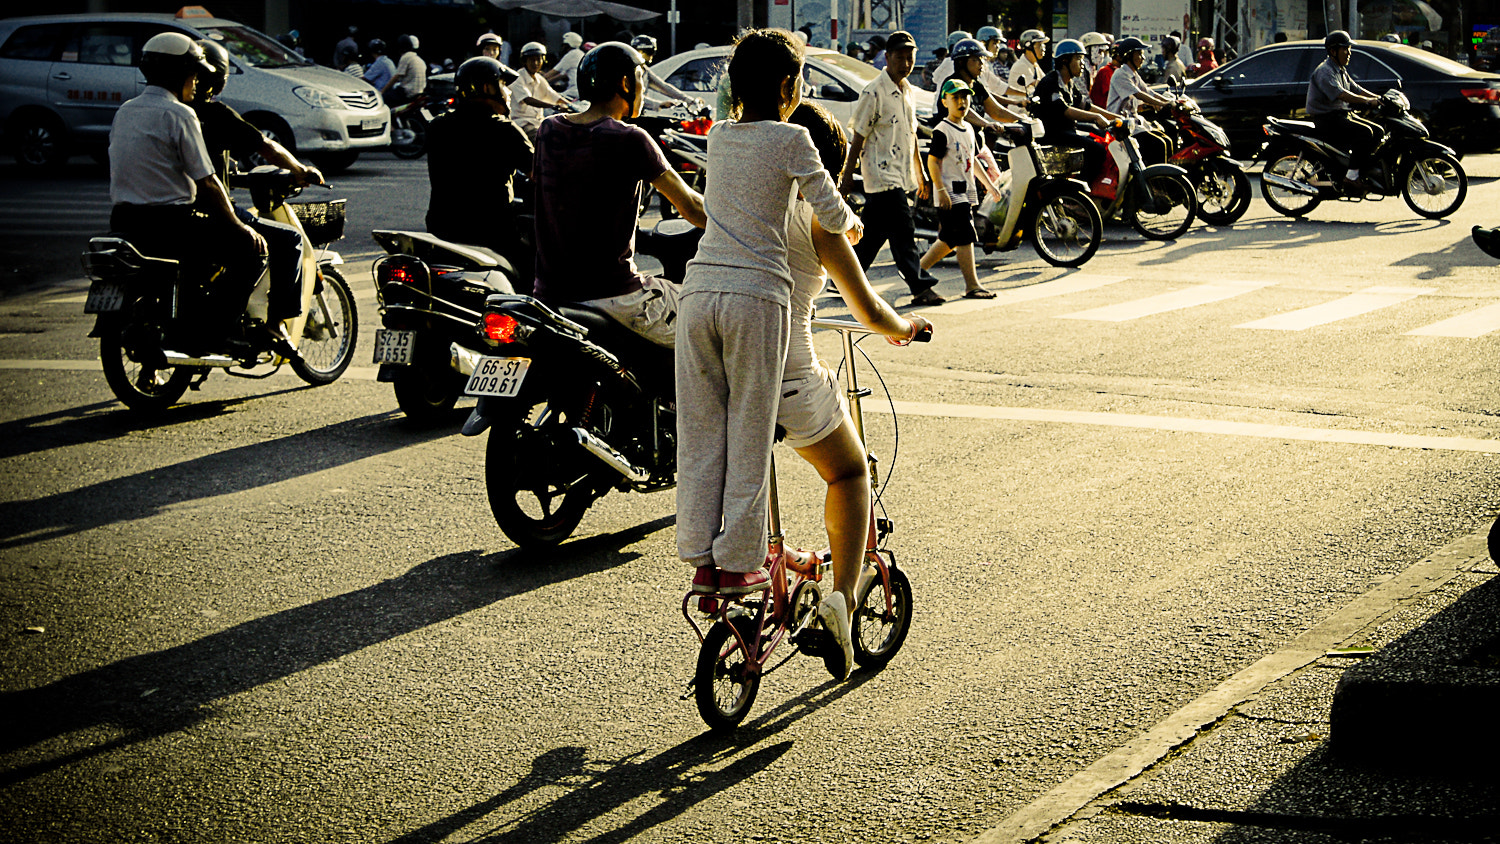 Photograph Saigon Street X by Minh Tran on 500px